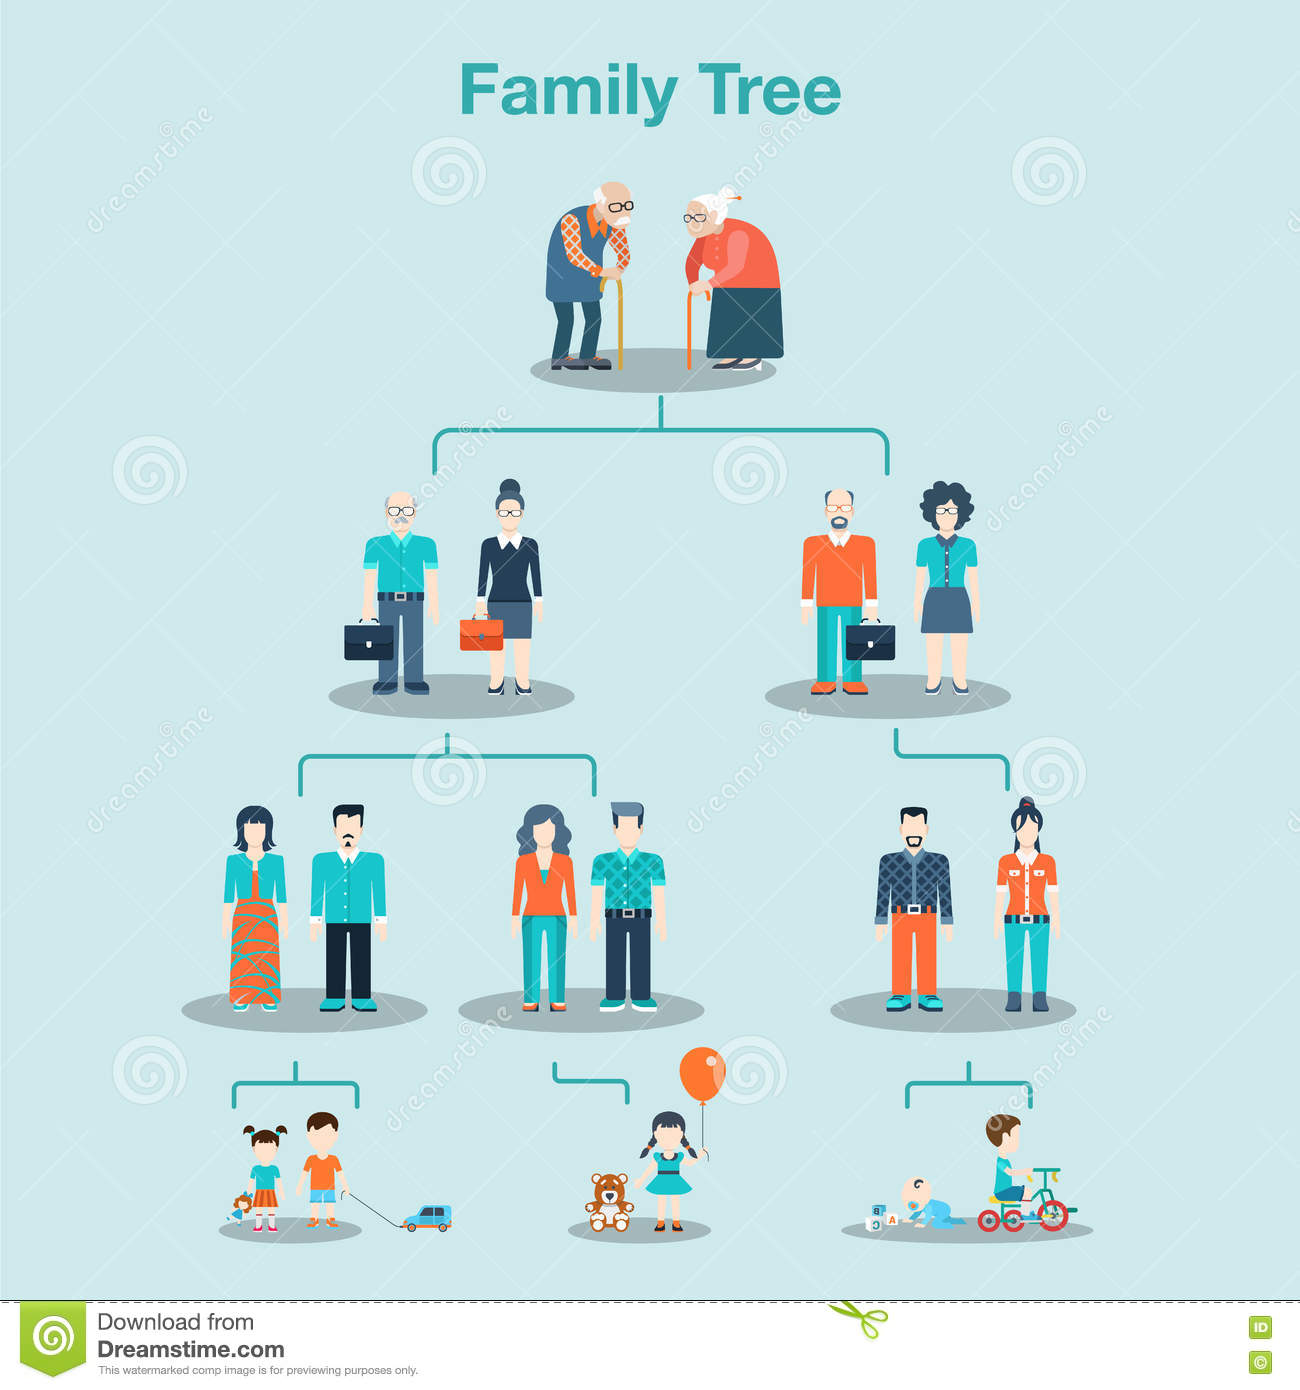 Family Tree Genealogy Concept Vector Illustration. Stock Vector ...